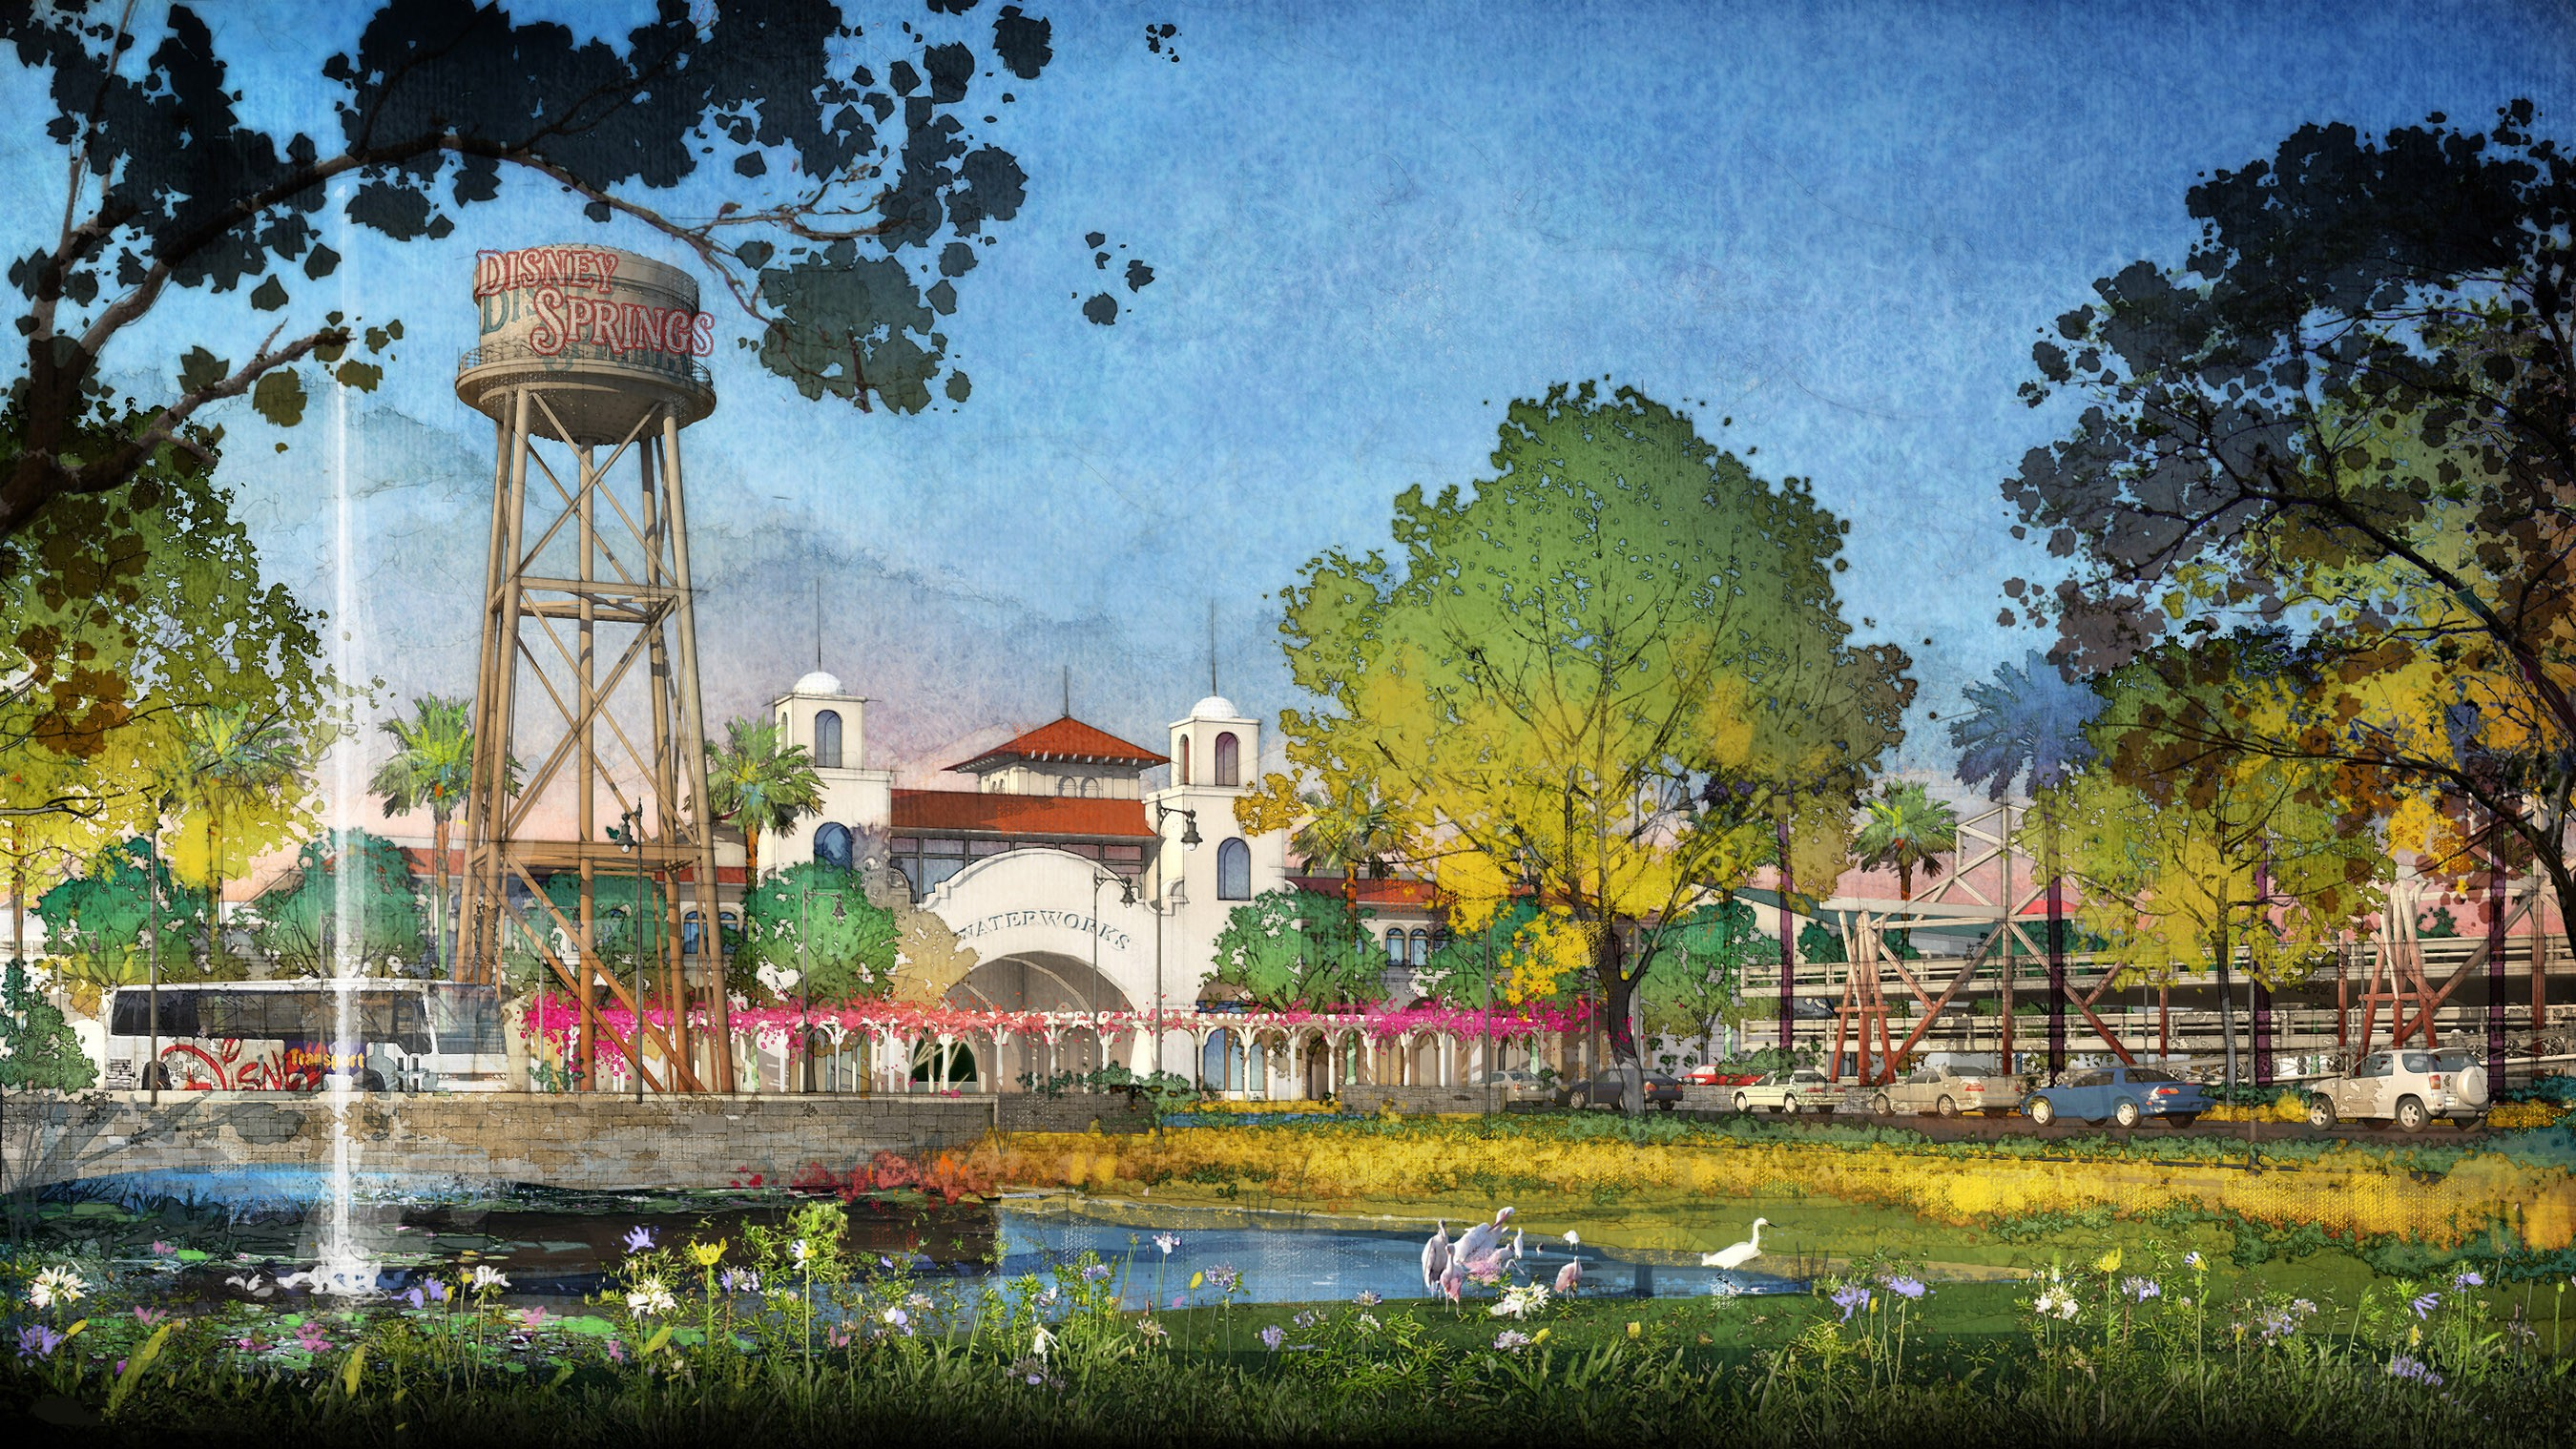 New stuff at Disney Springs: We're getting a Uniqlo